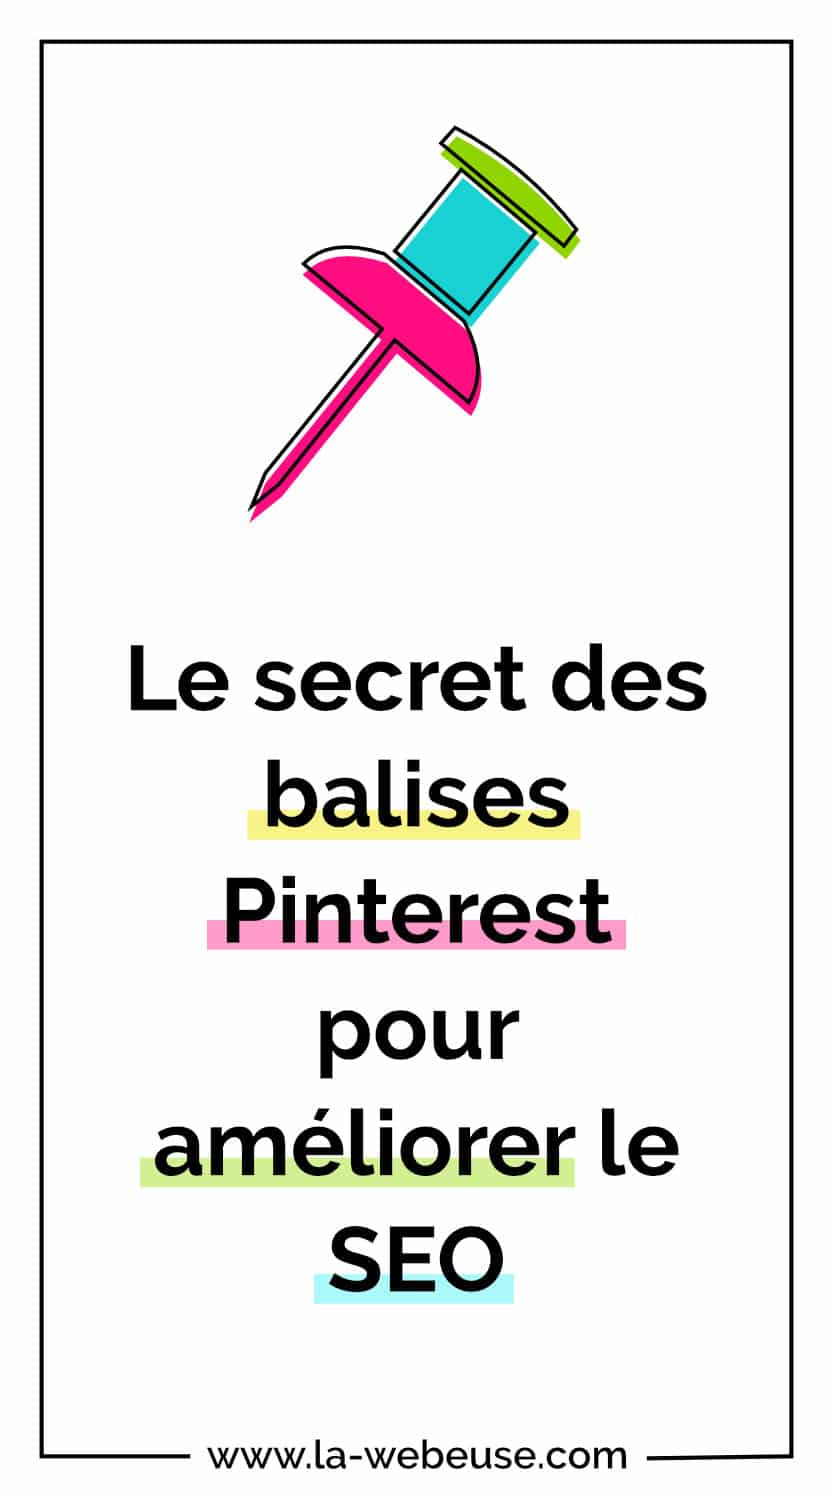 Le secret des attributs Pinterest